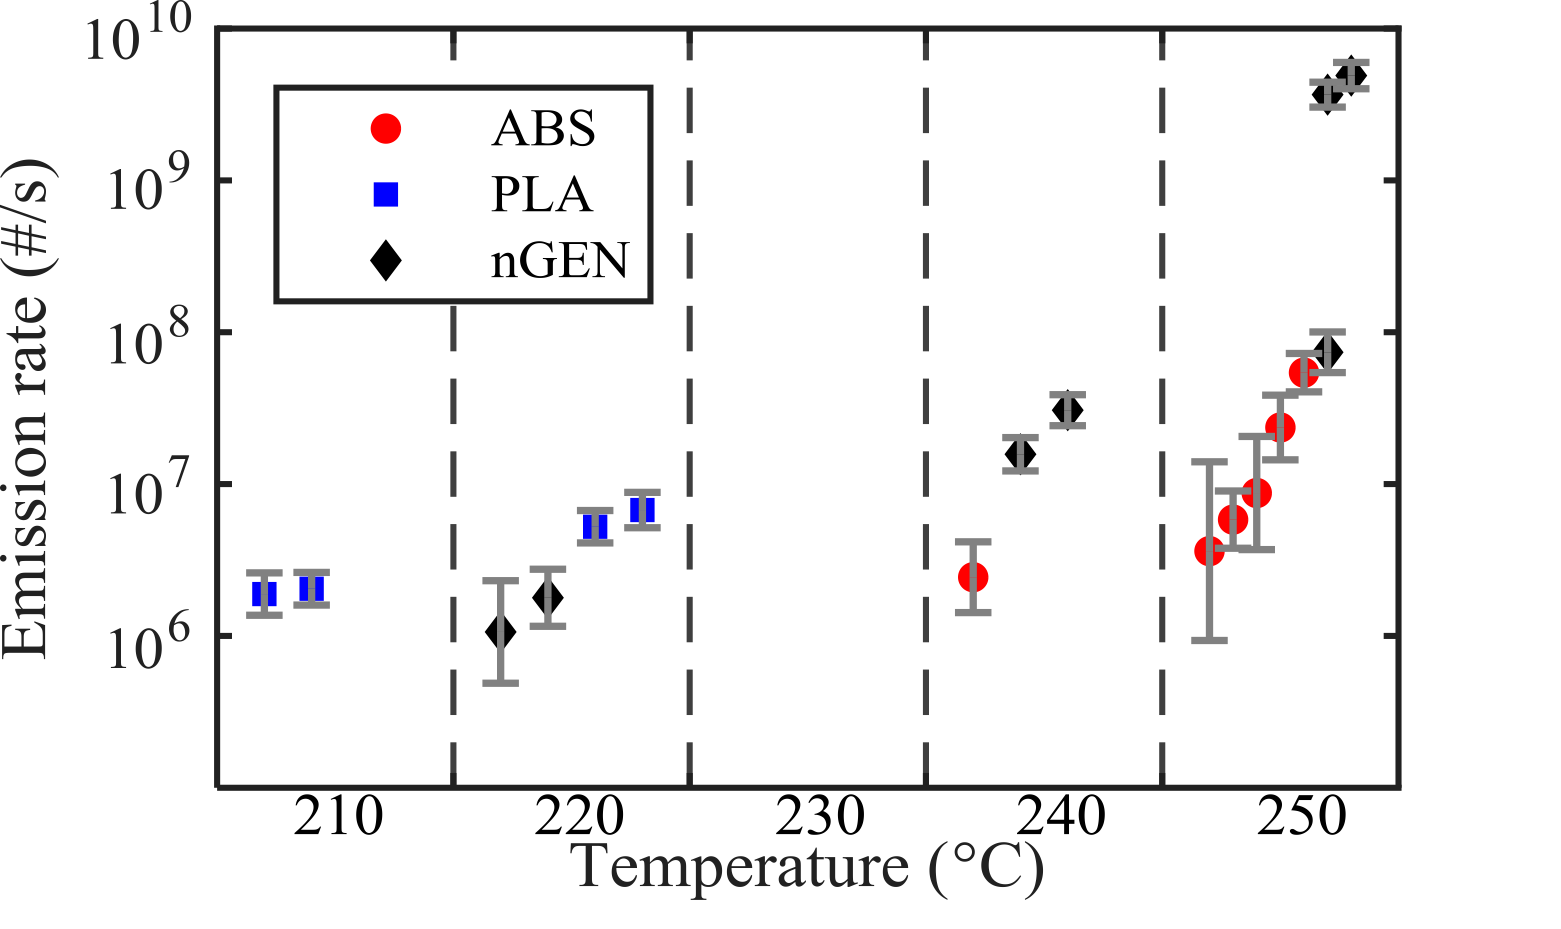 ba66231d42c ... NCA emission rates of filament materials as a function of the nozzle  temperature. The error bars contribute to the maximum range of variation.